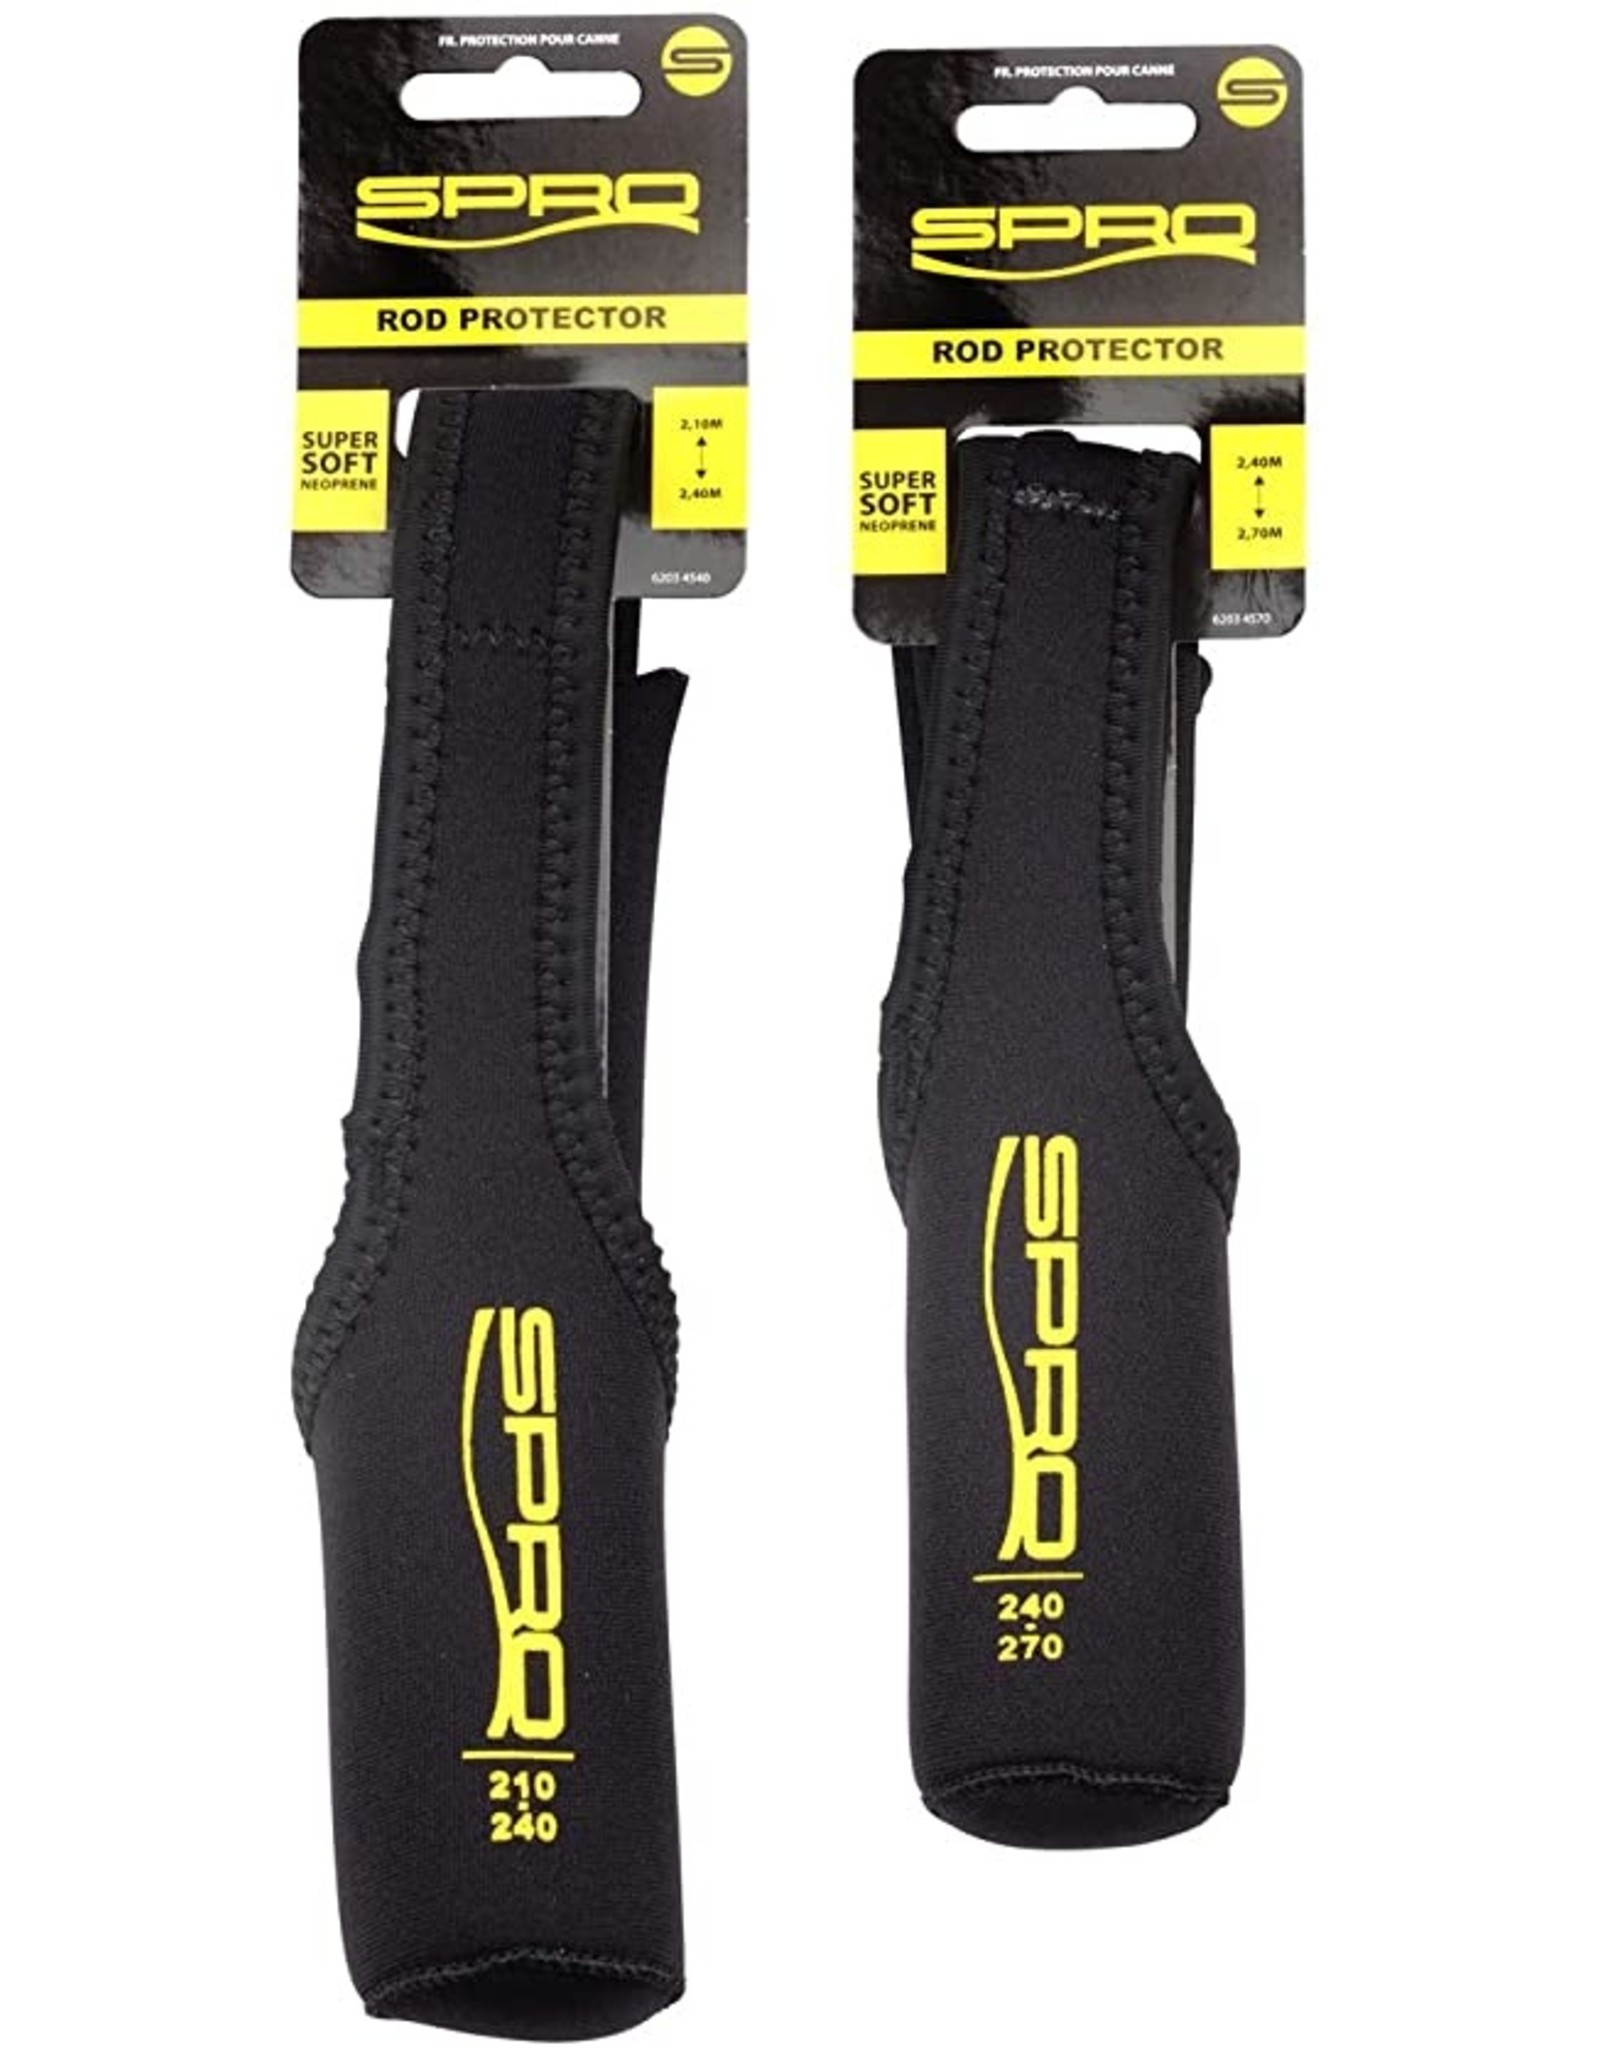 SPRO Rod Protector